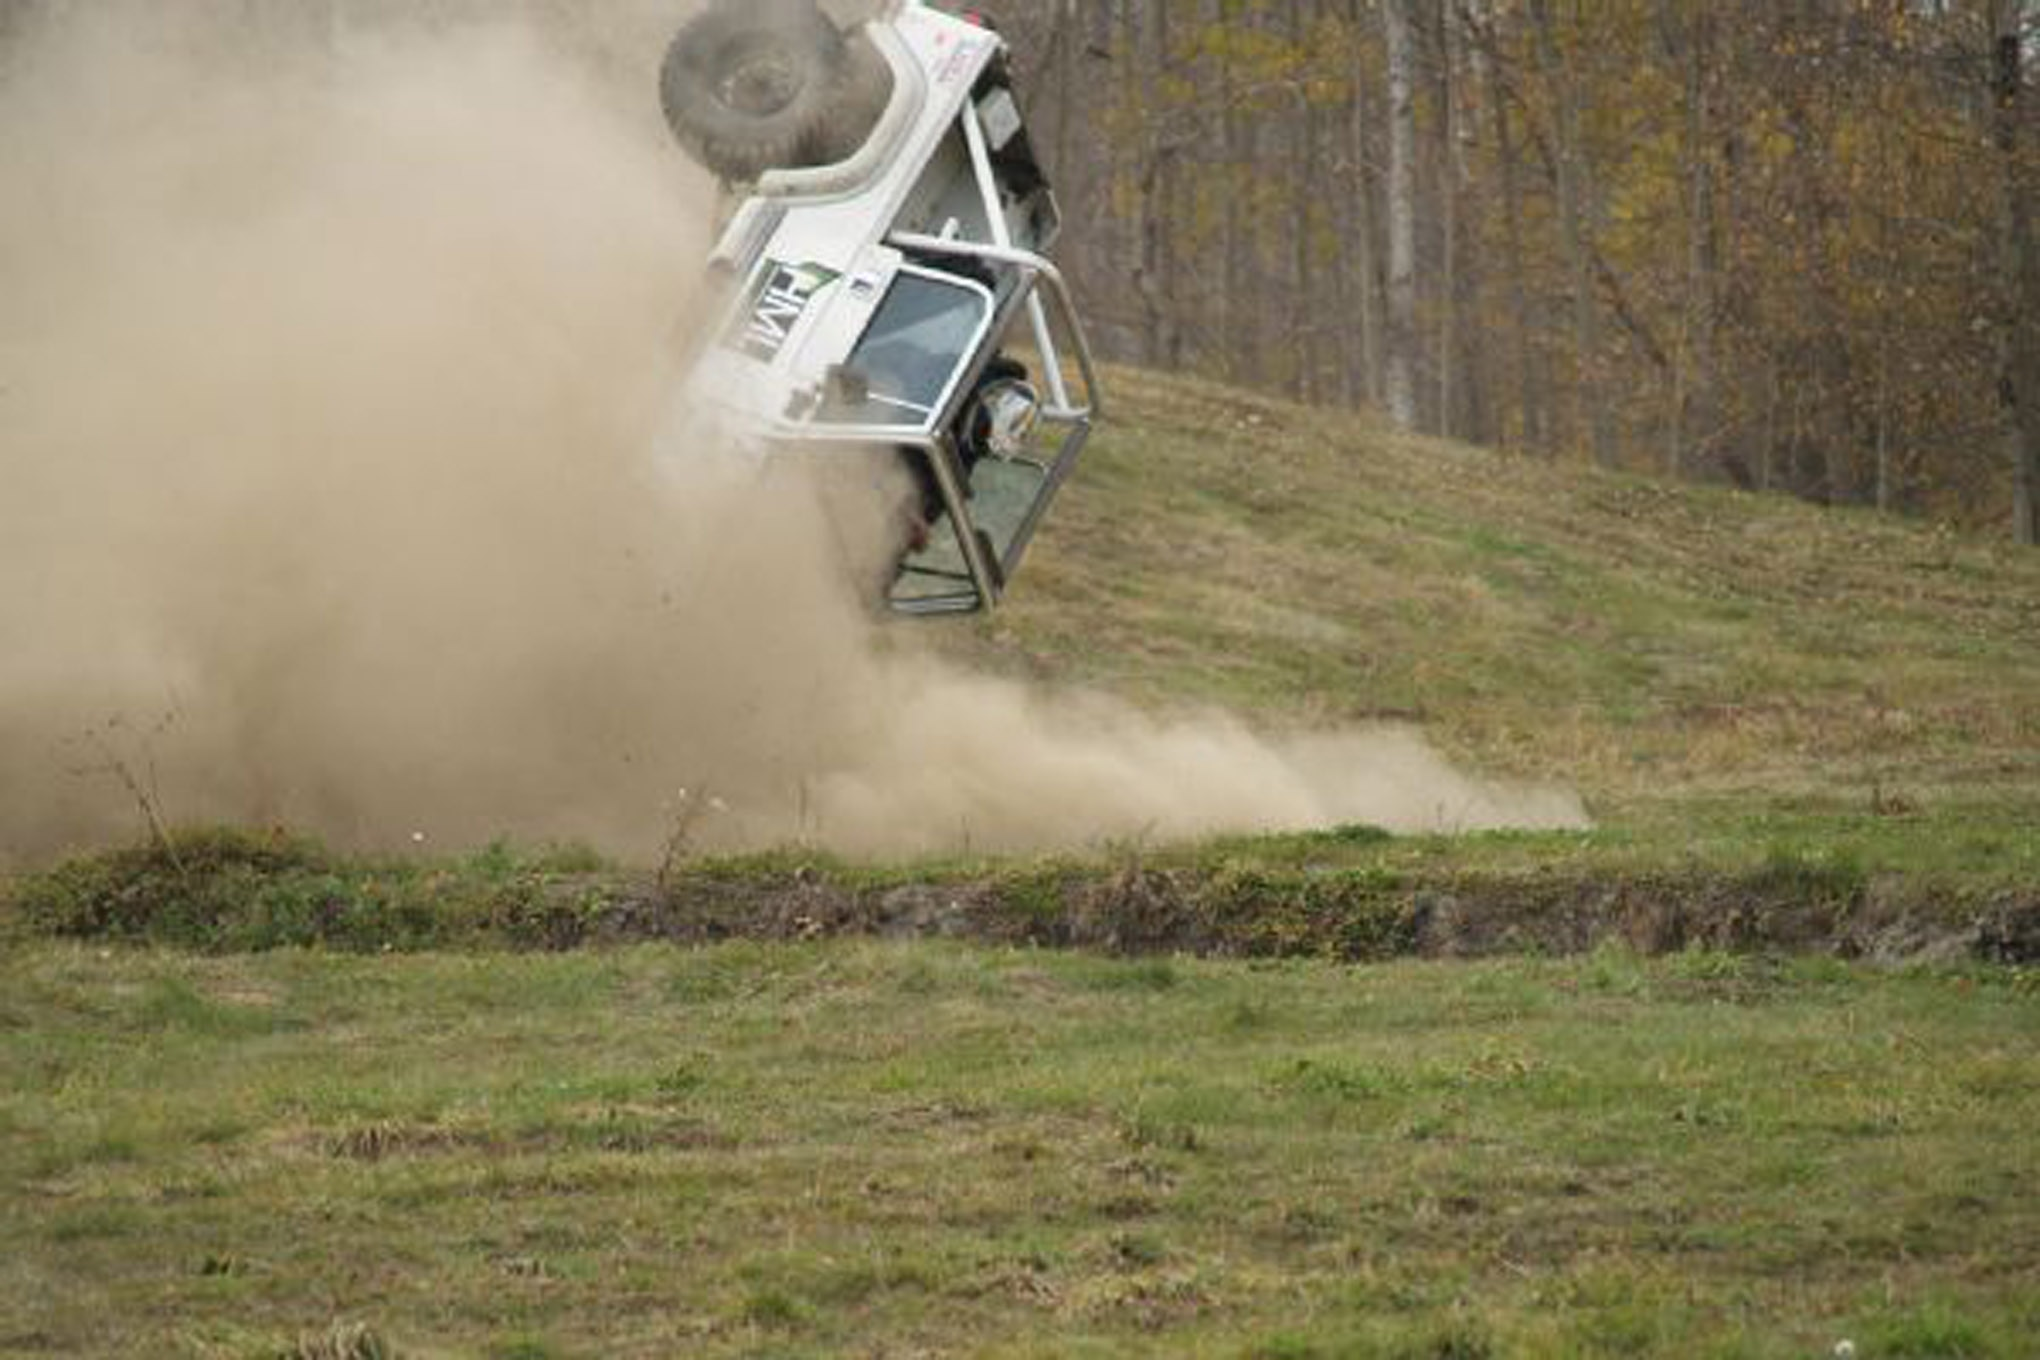 001 jeep reader rides sideways best of turgeon